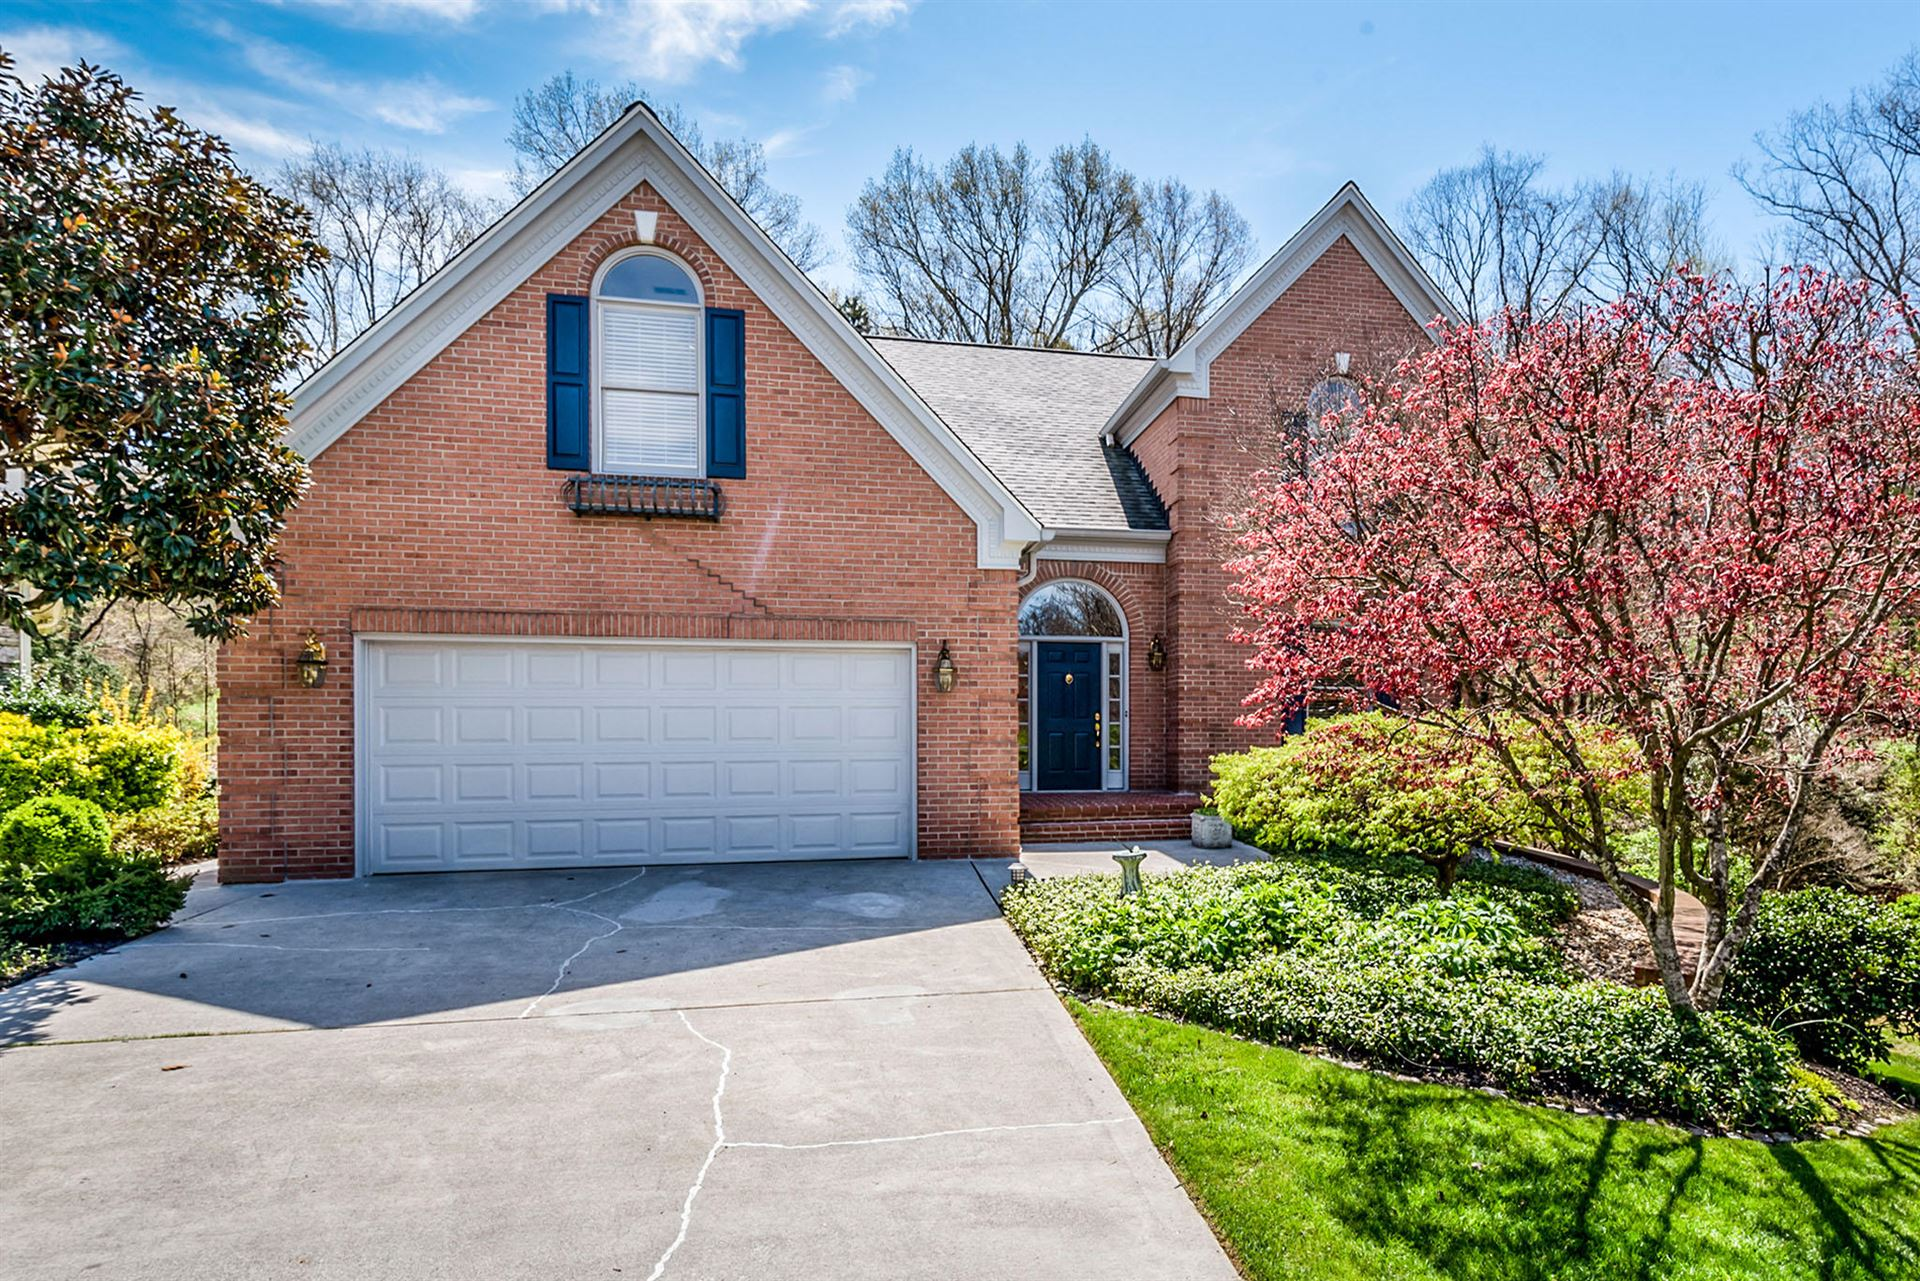 Photo of 2109 Saint Ives Blvd, Knoxville, TN 37922 (MLS # 1112579)